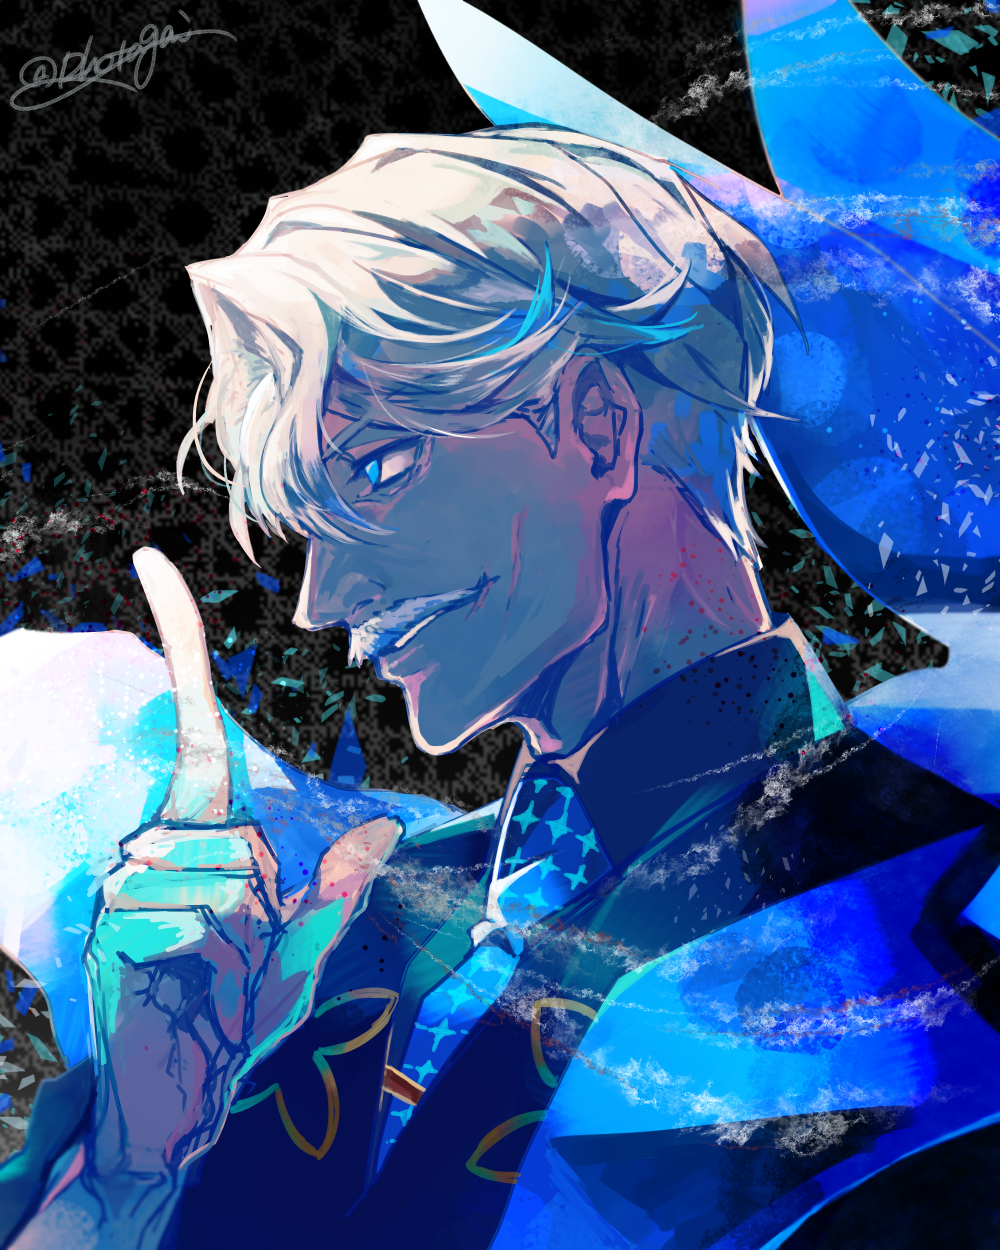 1boy blue_eyes facial_hair fate/grand_order fate_(series) grey_hair highres hotate_rayan james_moriarty_(fate/grand_order) male_focus mustache necktie pointing pointing_up portrait profile twitter_username vest